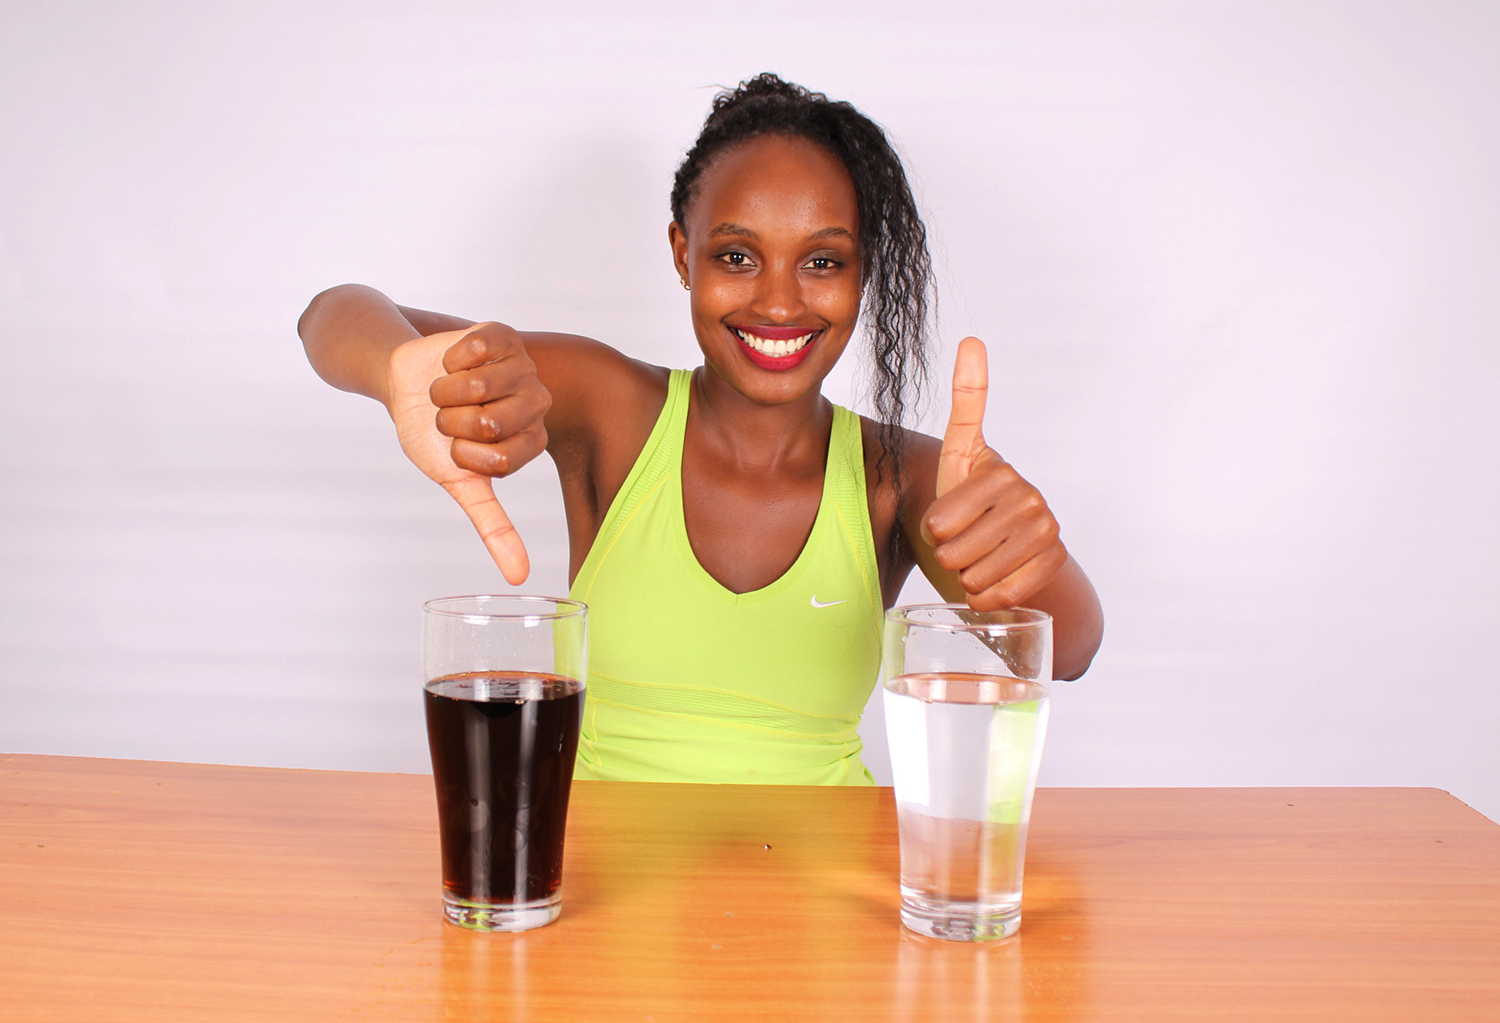 Soda vs Water. Woman gives thumps up water and thumbs down for soda